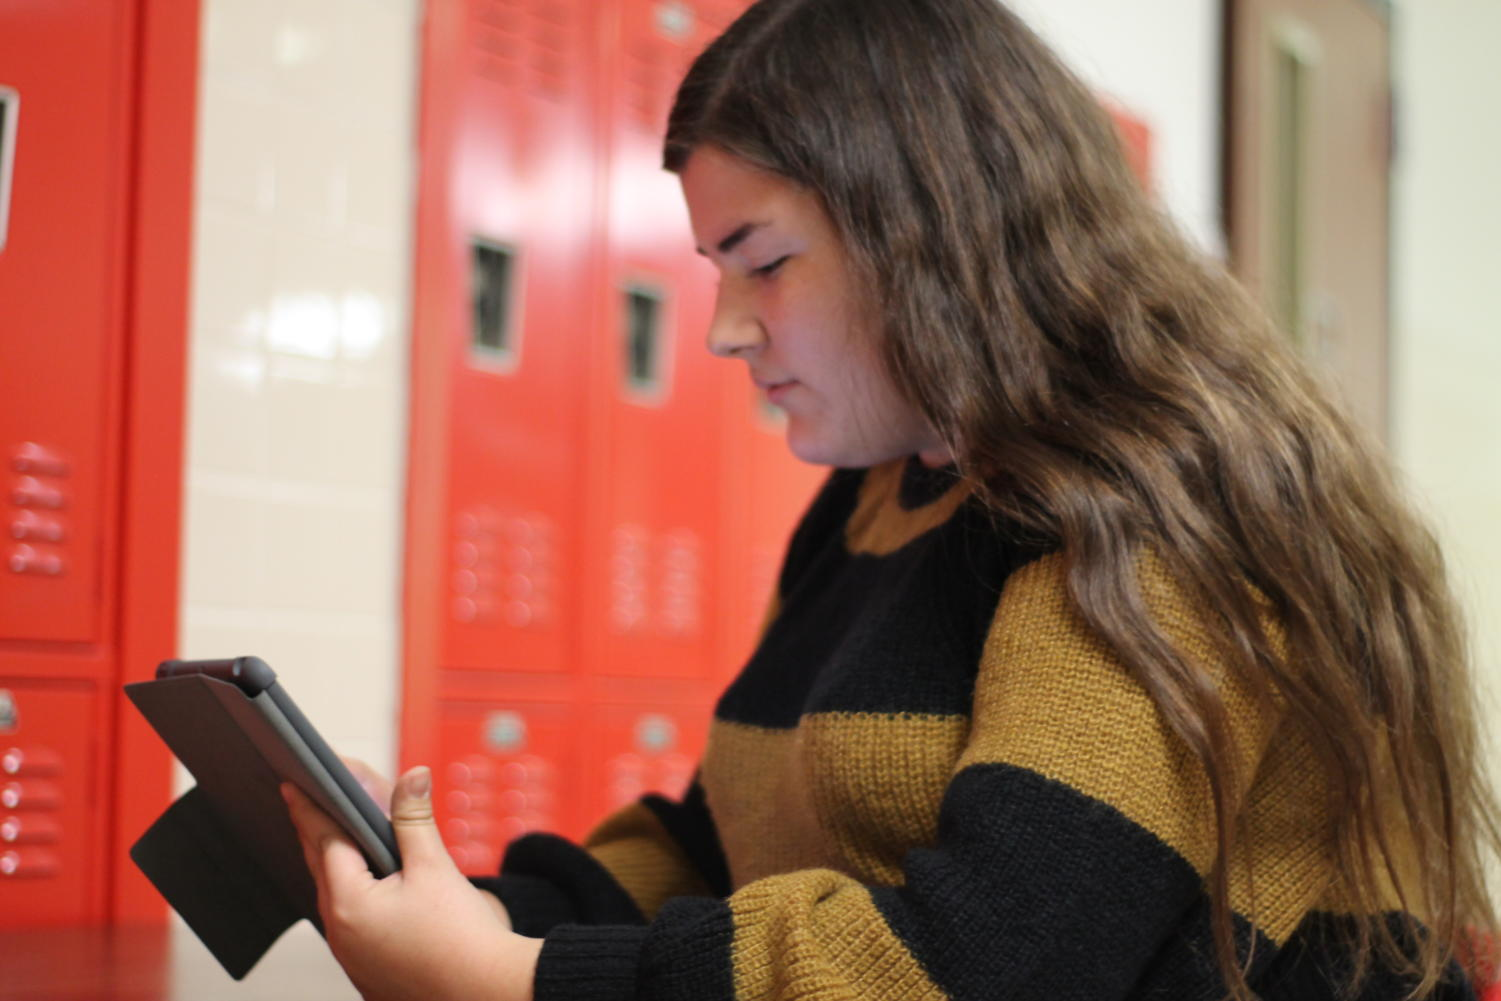 Junior Julia Campopiano digitally paints on her personal iPad by using her finger and the app Procreate. To find Campopiano's YouTube channel search her name.